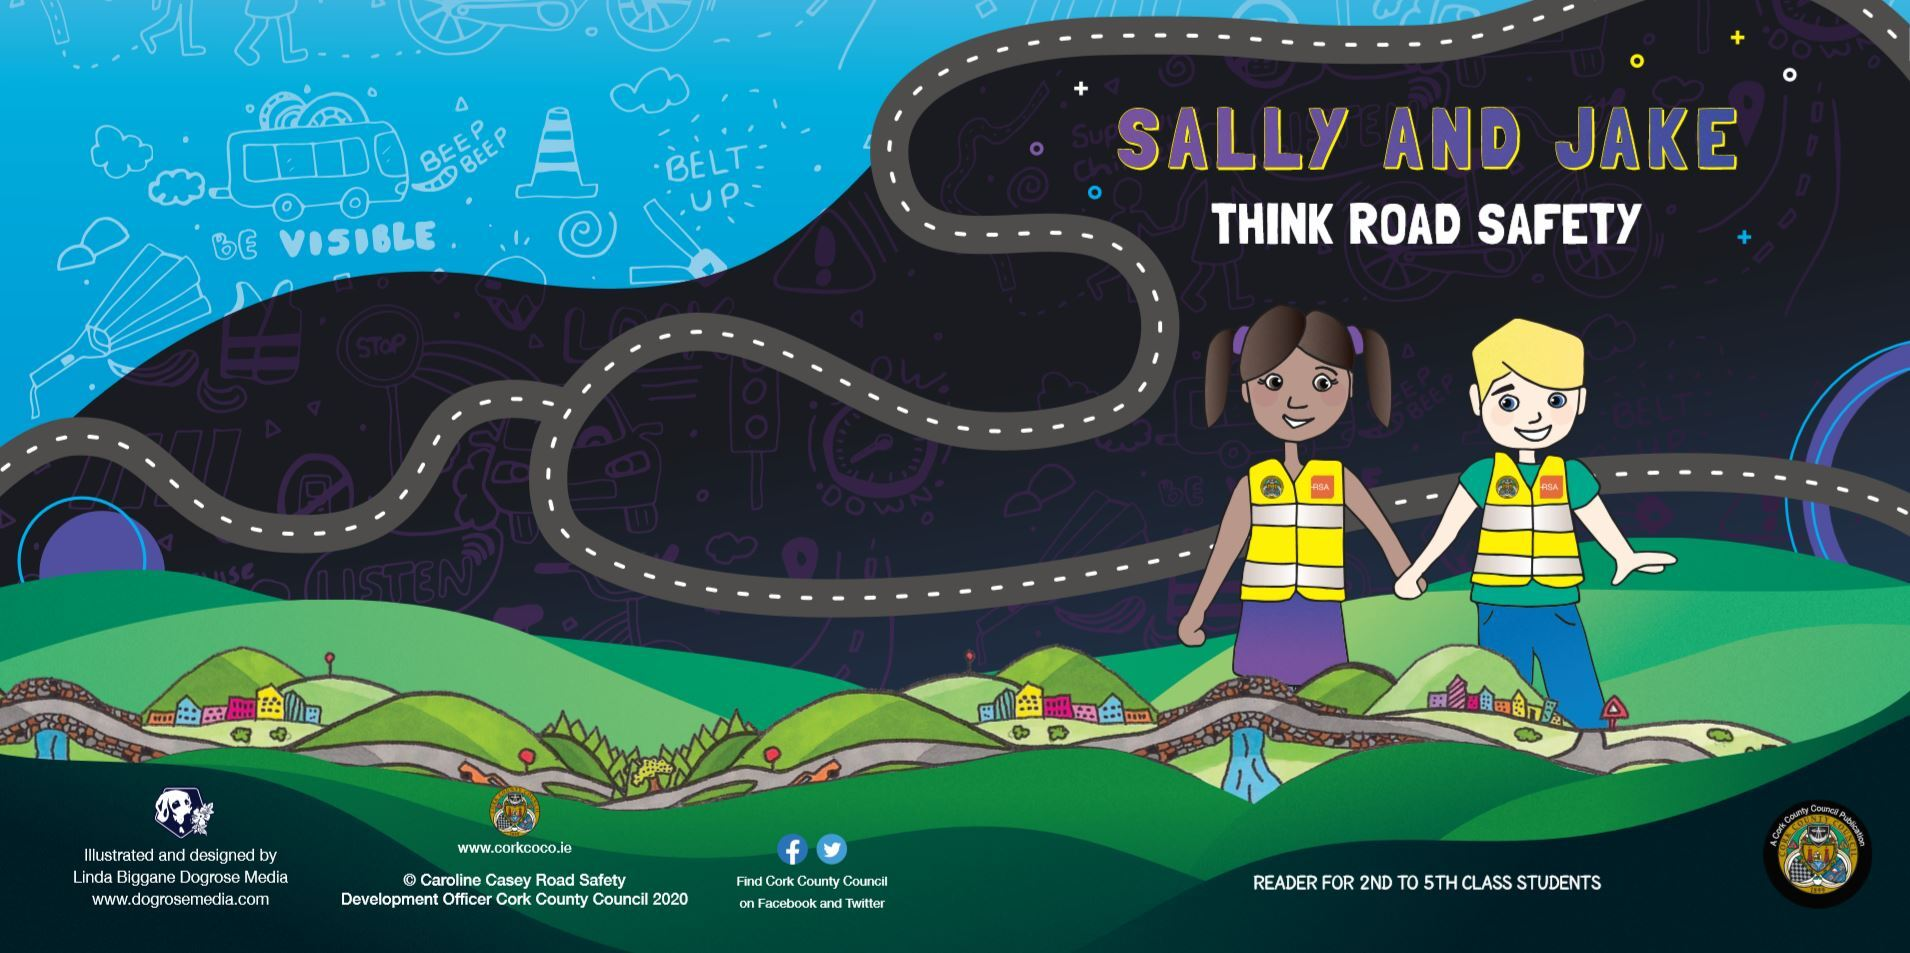 Road Safety Book - Sally and Jake, Think Road Safety.